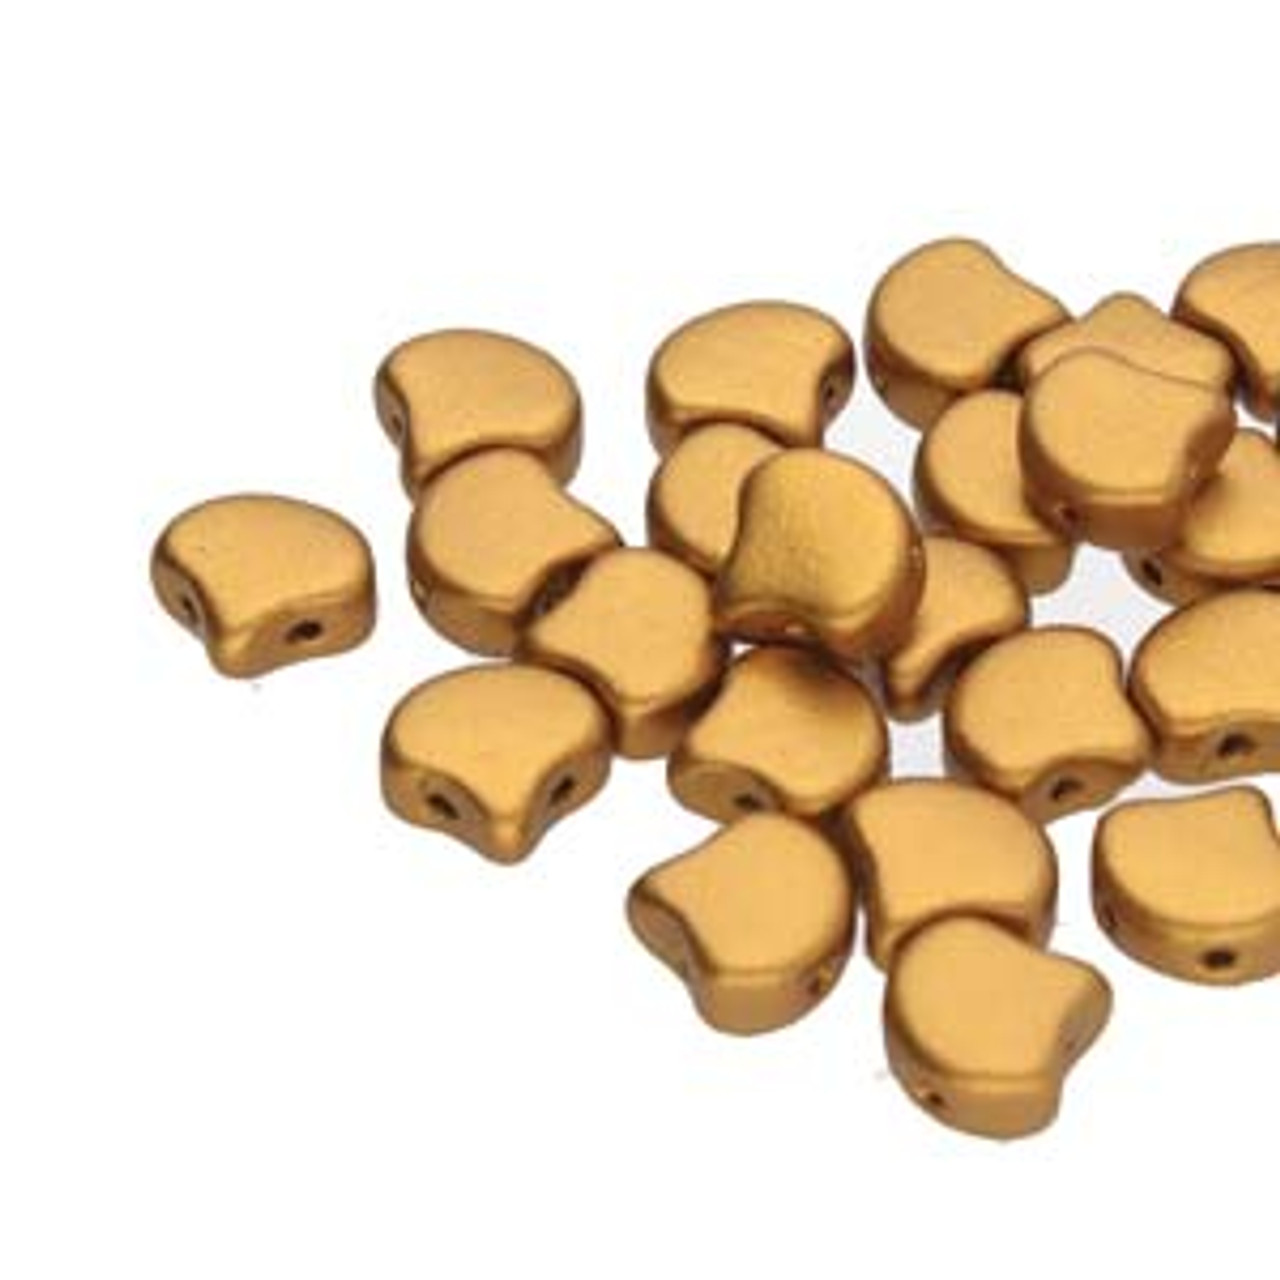 7.5x7.5mm Bronze Gold Two Hole Ginko Beads (8 Grams) Approx 30-35 Beads